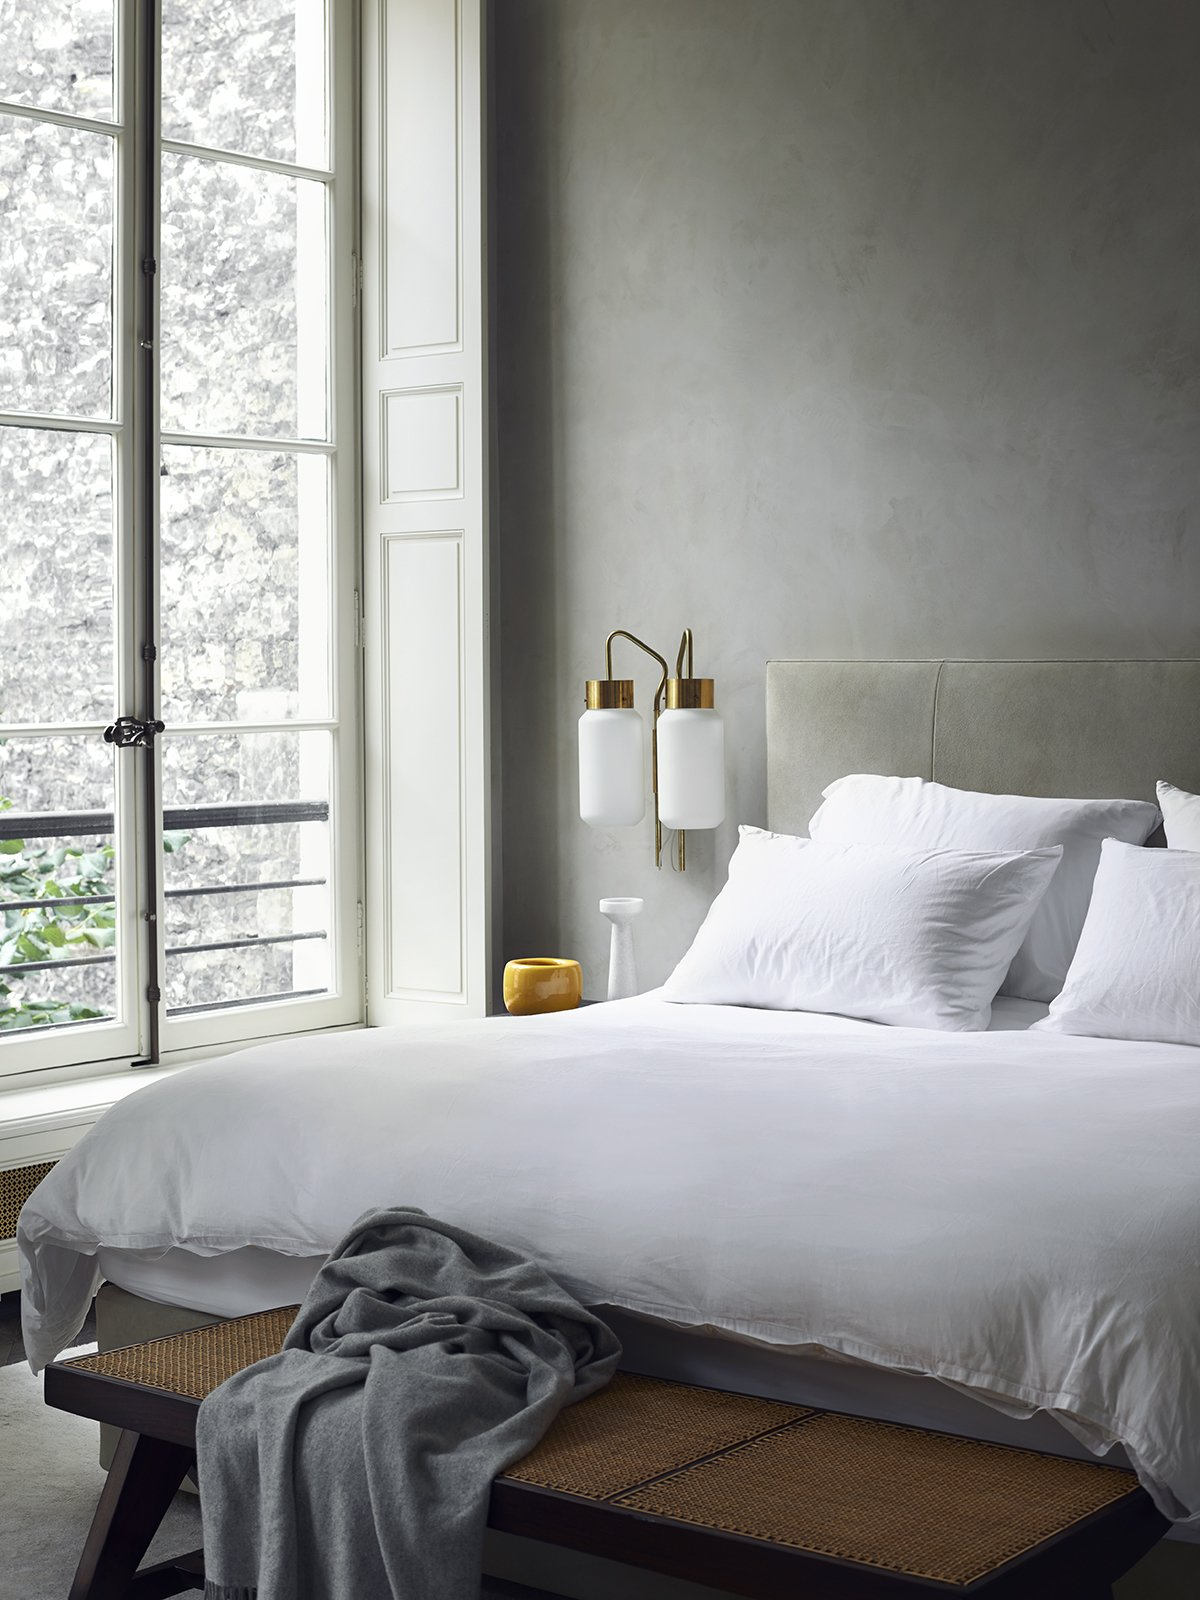 Bedroom, Bench, Bed, and Wall Lighting Architect Joseph Dirand's bedroom boasts sandy gray walls and upholstered headboard. The white bed linens help reflect daylight into the space and the Azucena sconces offer task illumination.  Monochromatic Color Palettes Are the Ultimate Modern Design Tool by Diana Budds